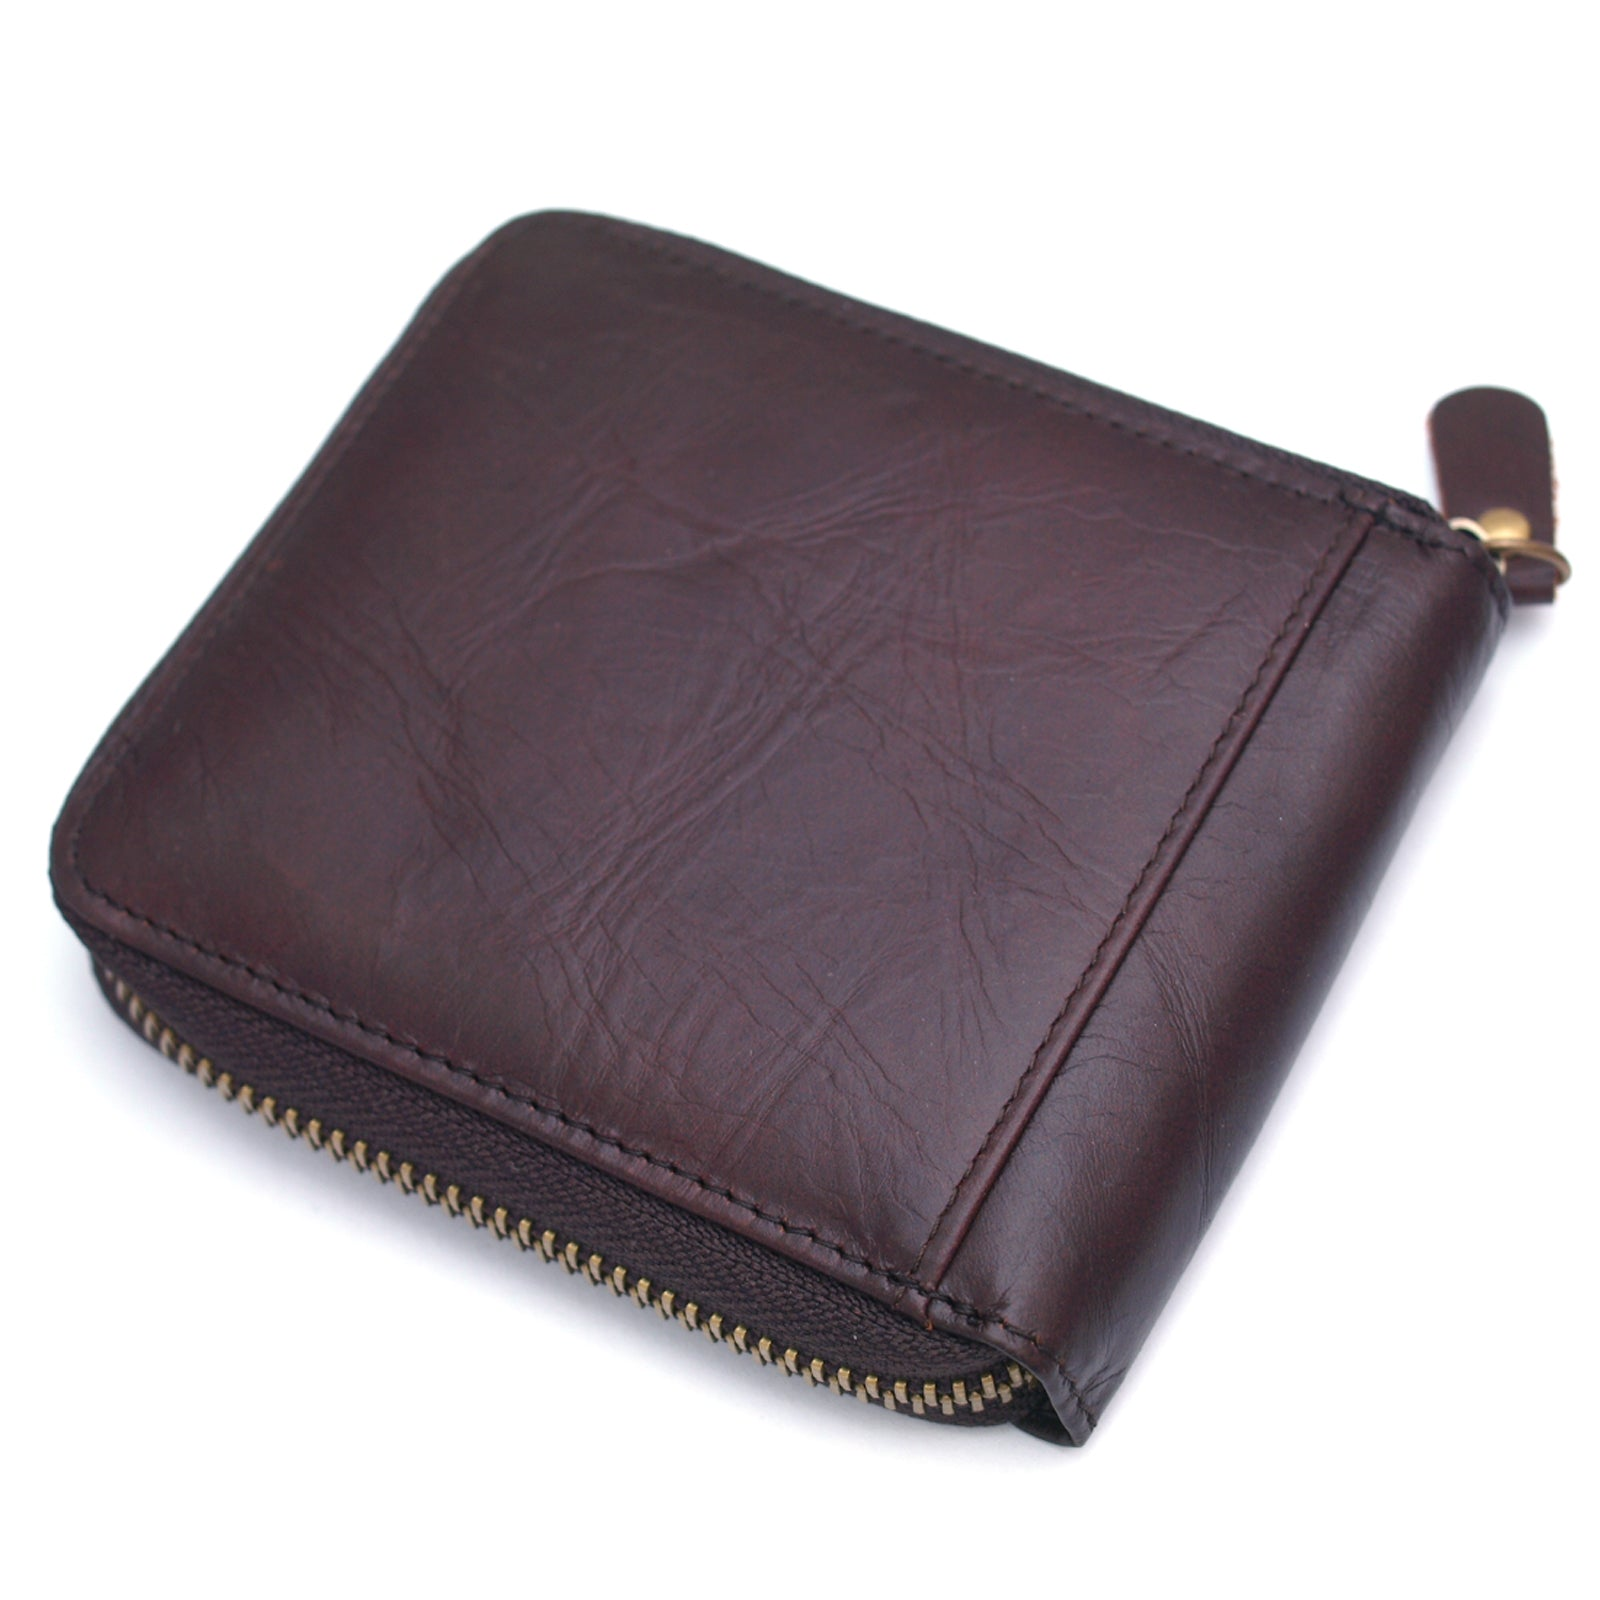 Men's Leather Wallet Zip Around Coin Pocket Credit Card Holder Purse MJ2552 - ENCACC